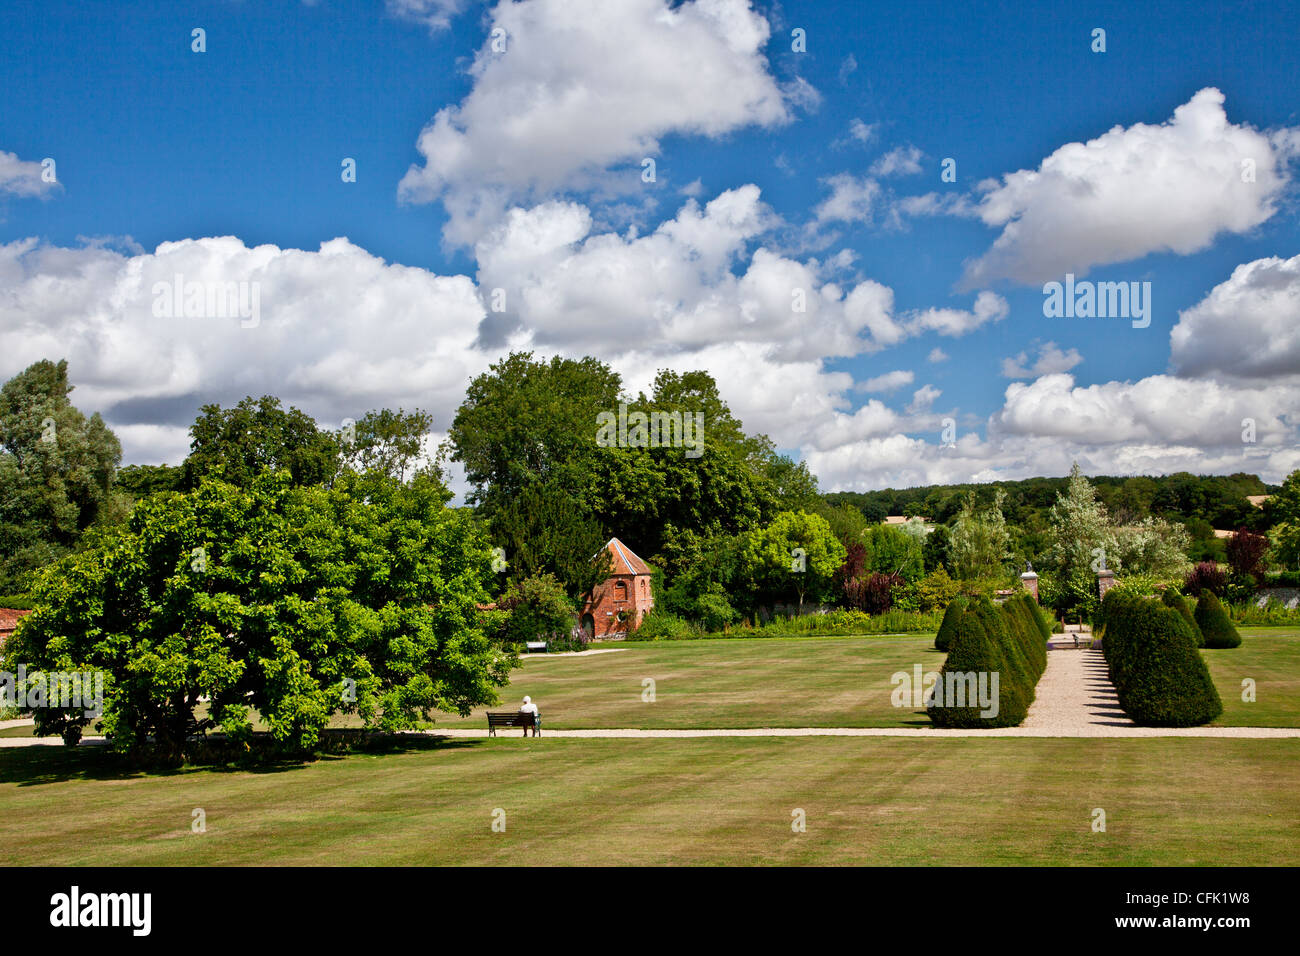 View across the lawn of the English country garden of Littlecote Manor in Berkshire, England, UK - Stock Image